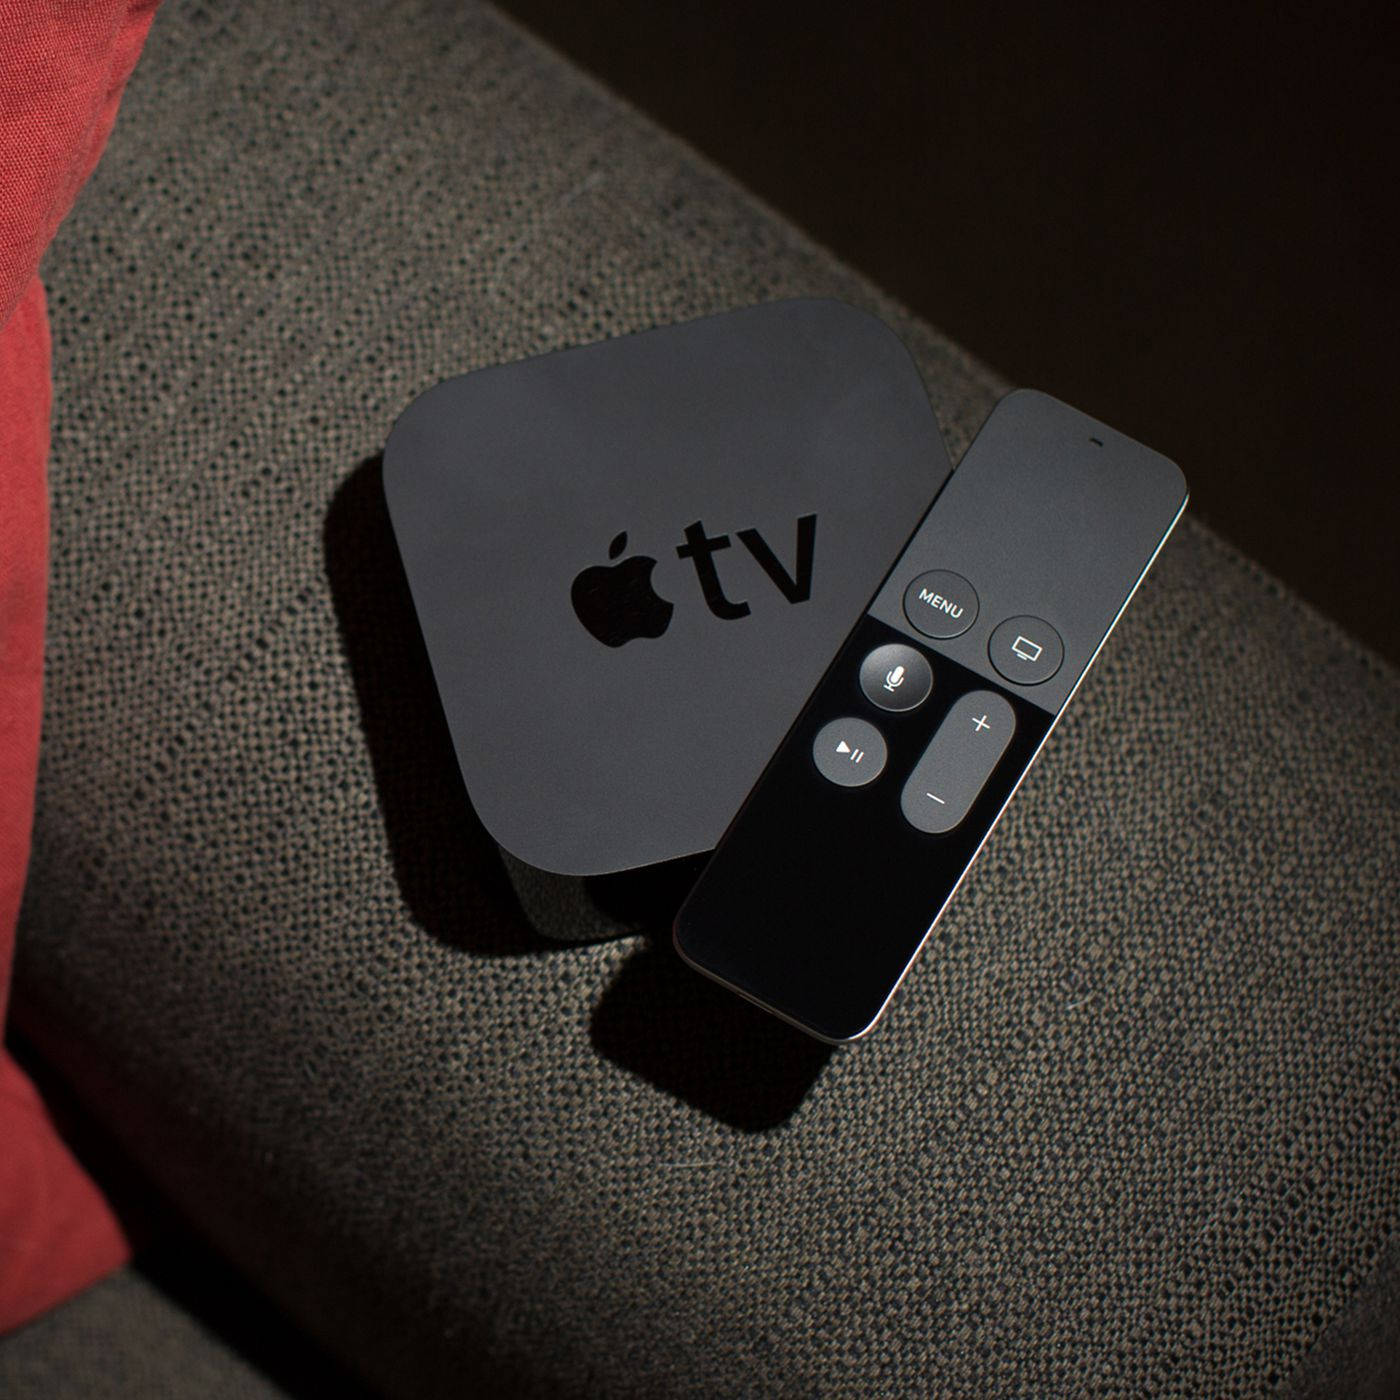 FuboTV becomes the second live TV service to integrate with Apple's